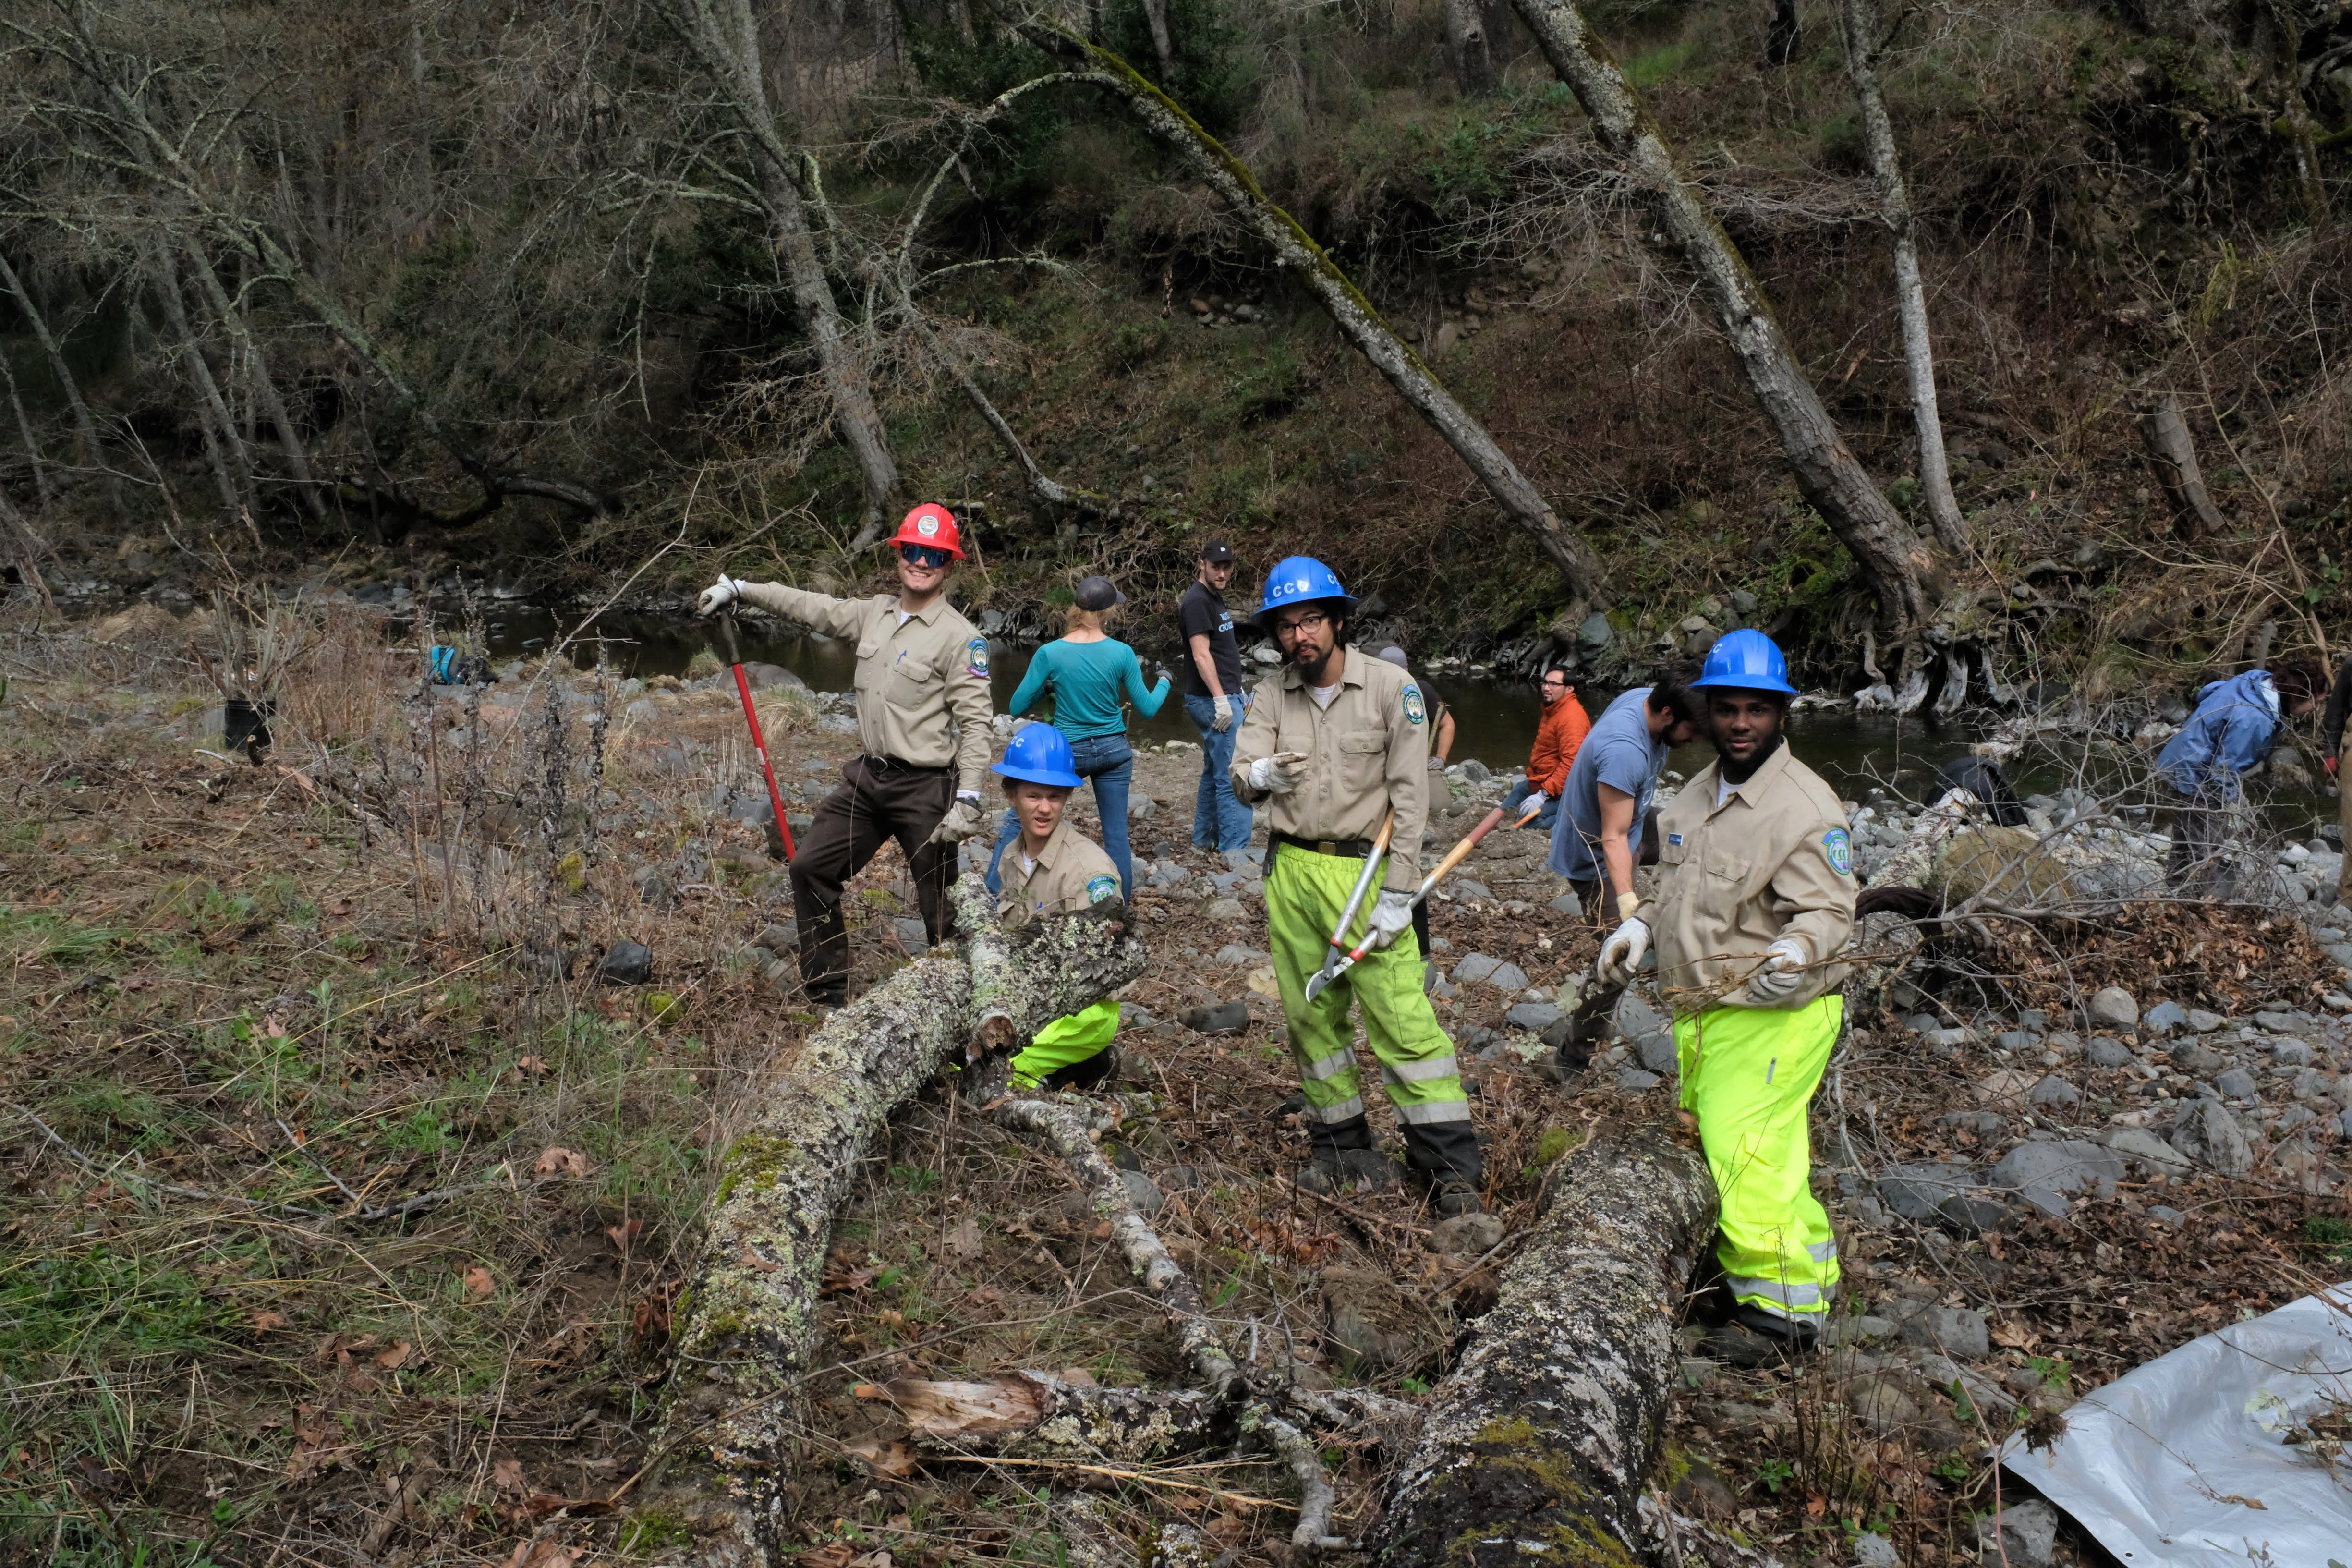 California Conservation Corps members from Ukiah removing invasive plants with style.